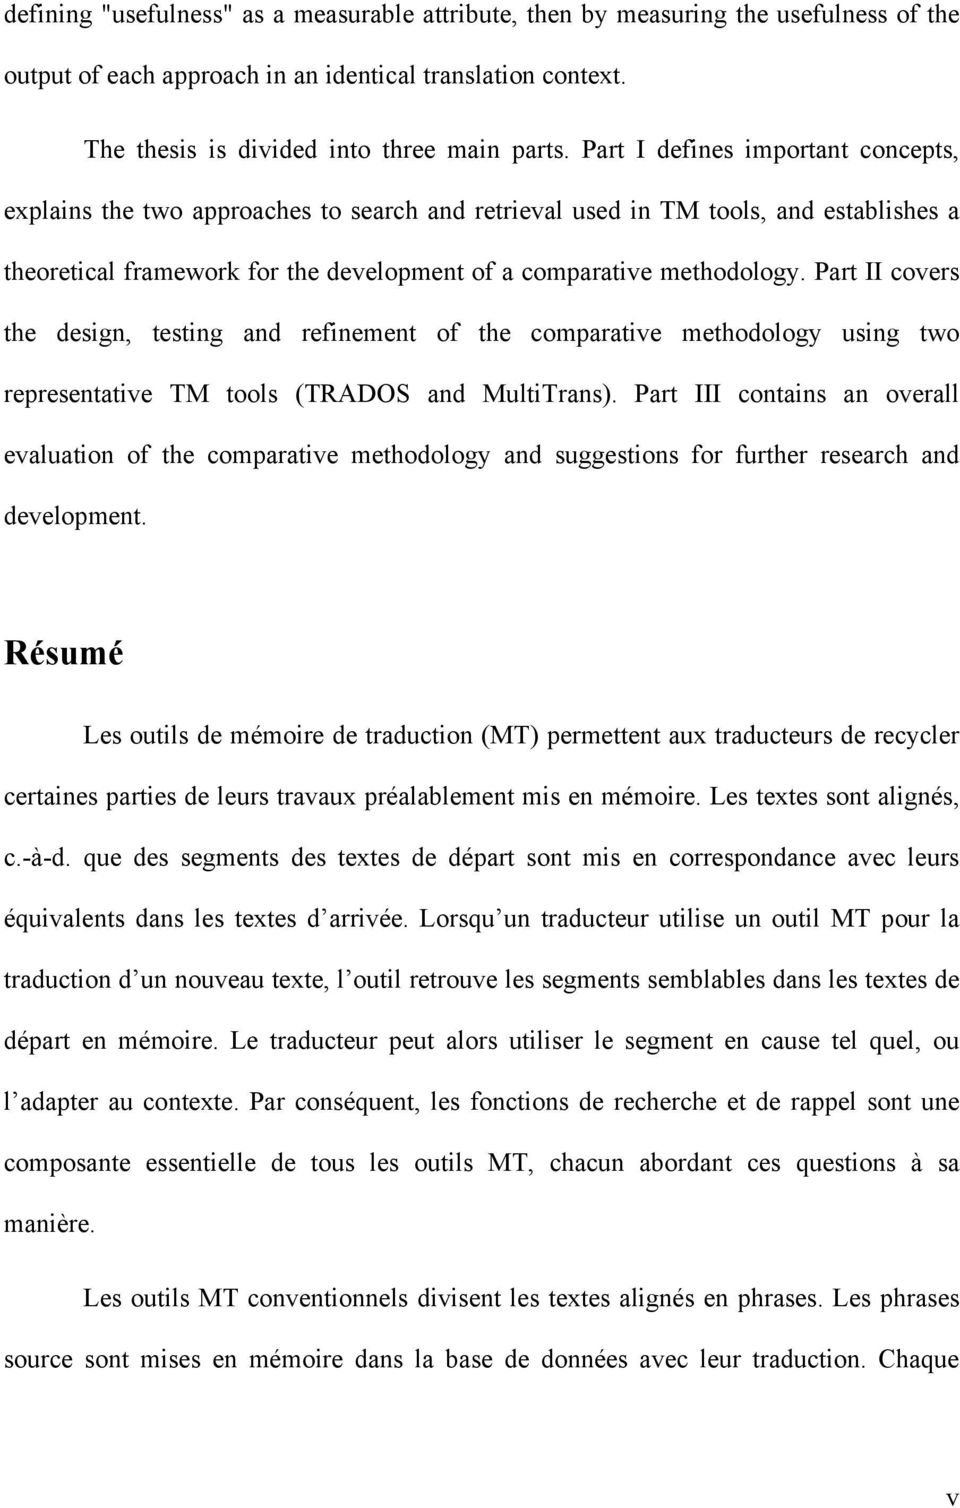 Metrics for evaluating translation memory software pdf part ii covers the design testing and refinement of the comparative methodology using two representative malvernweather Images